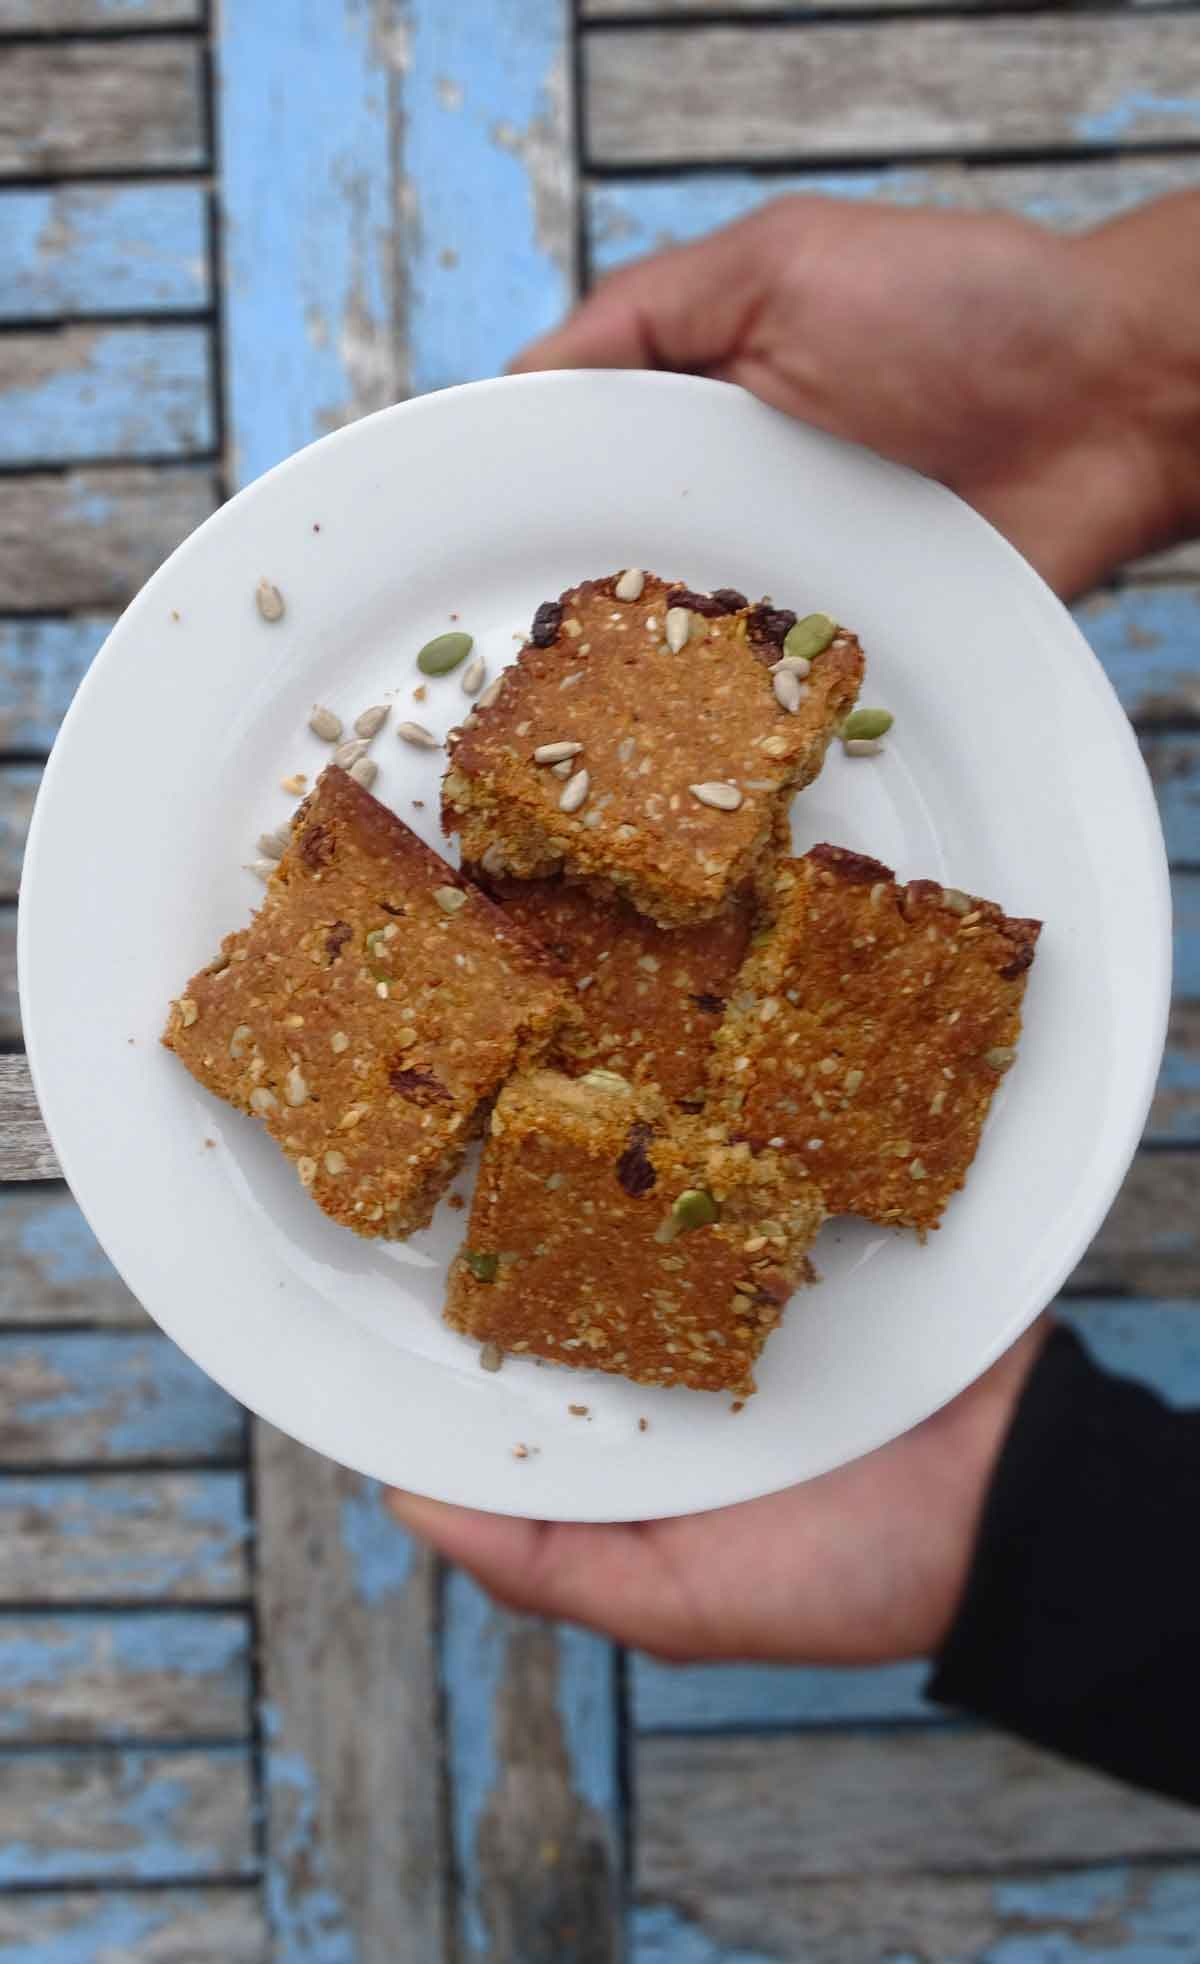 Vegan protein flapjacks that are easy and satiating! #bakedbyclo #veganflapjacks #protein #snack